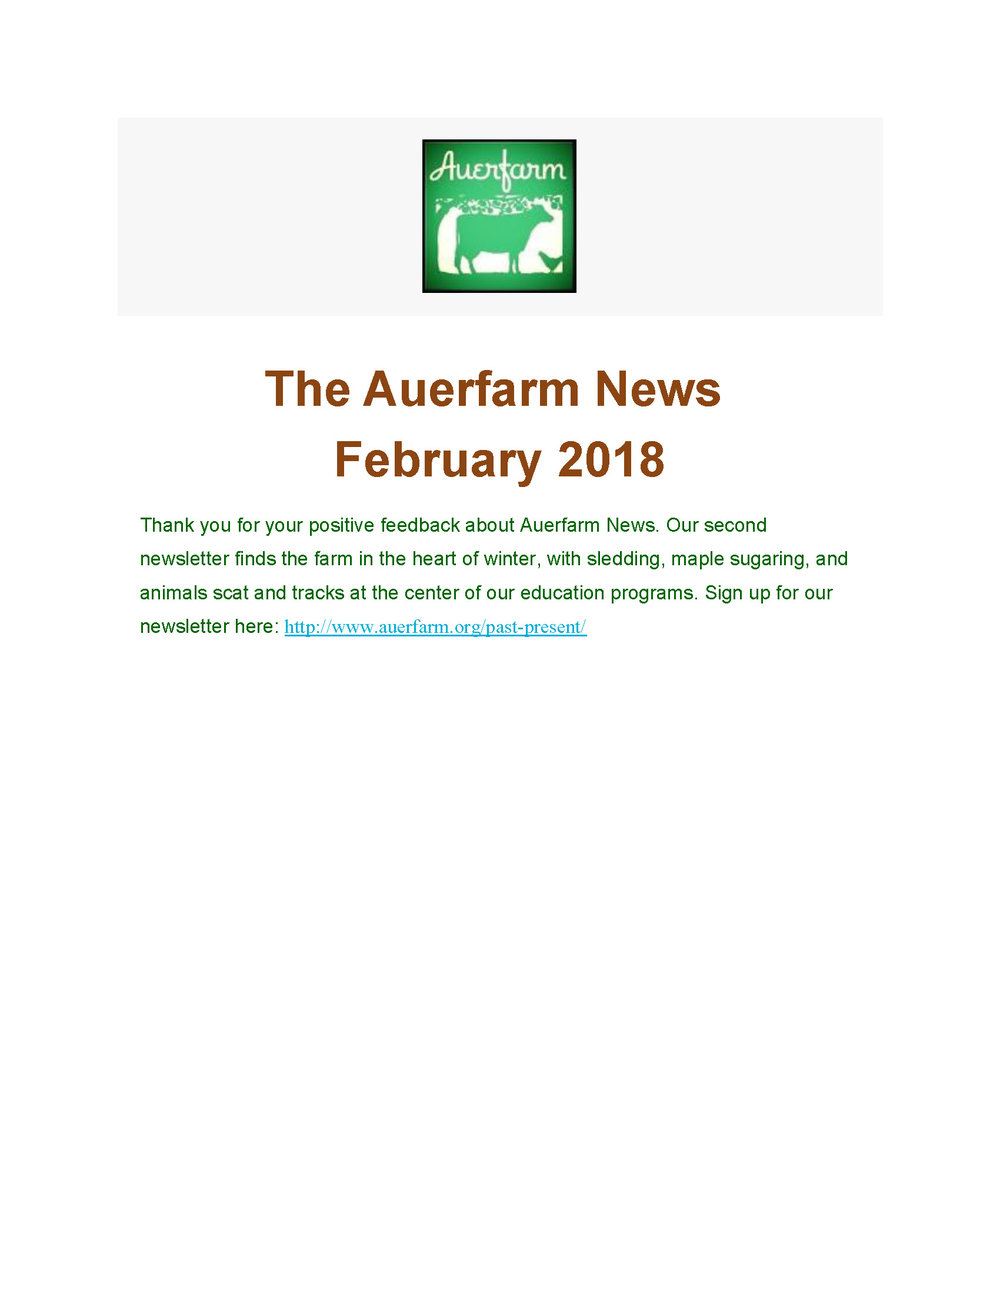 The Auerfarm News_Page_1.jpg